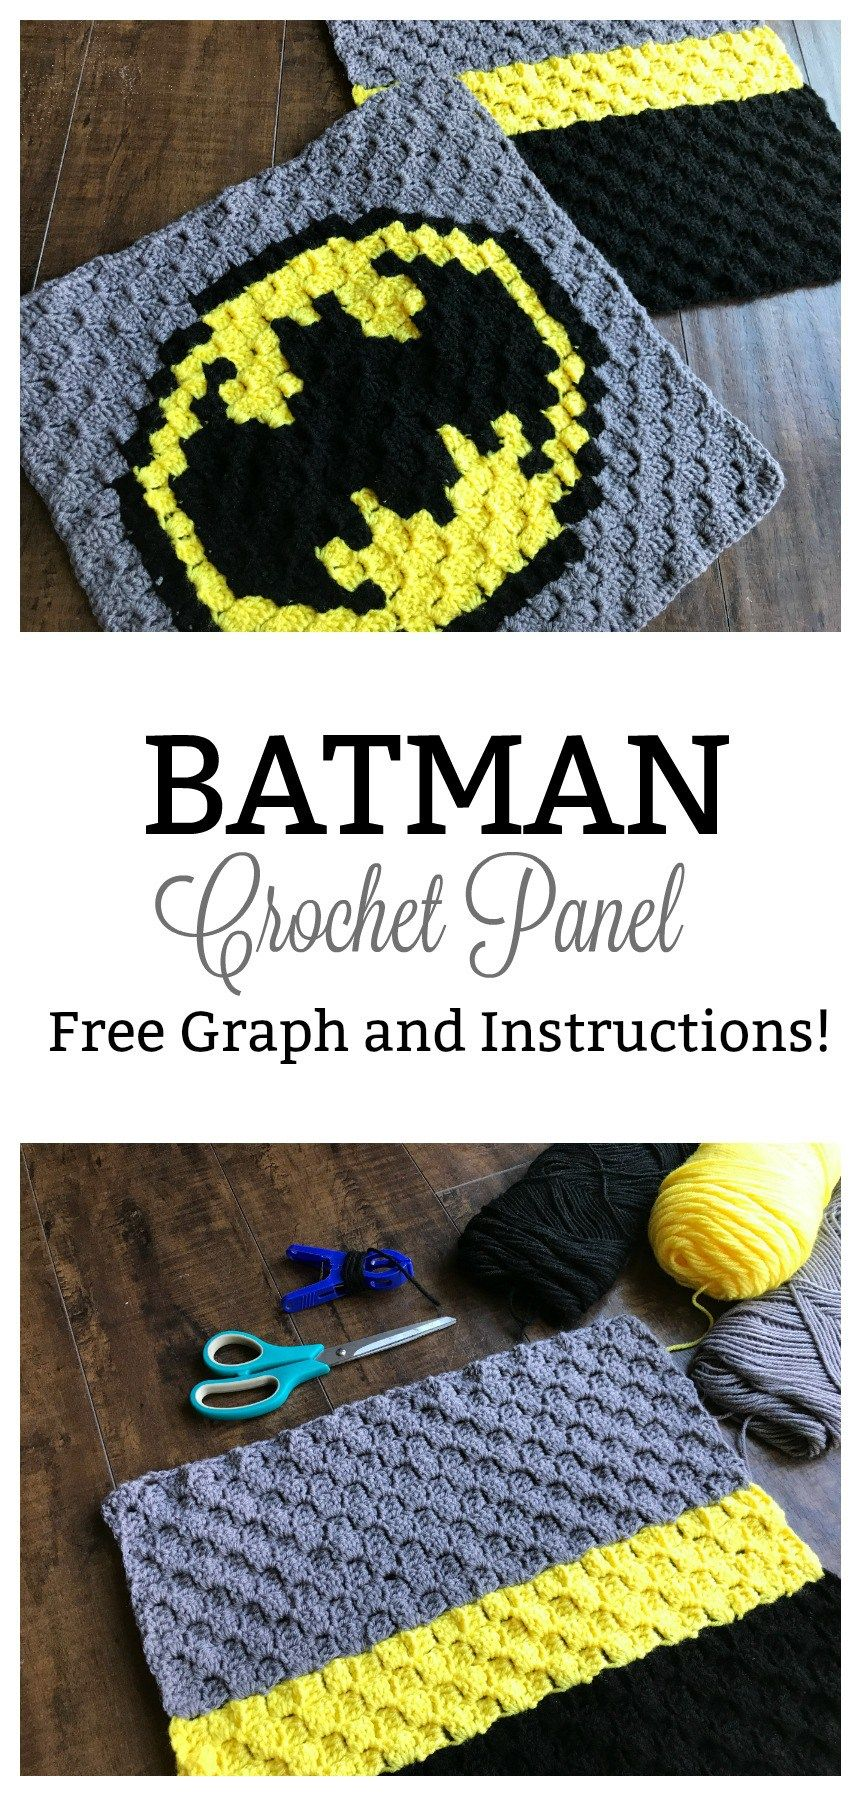 Incredible Batman Crochet Panel! This quick and easy C2C crochet ...